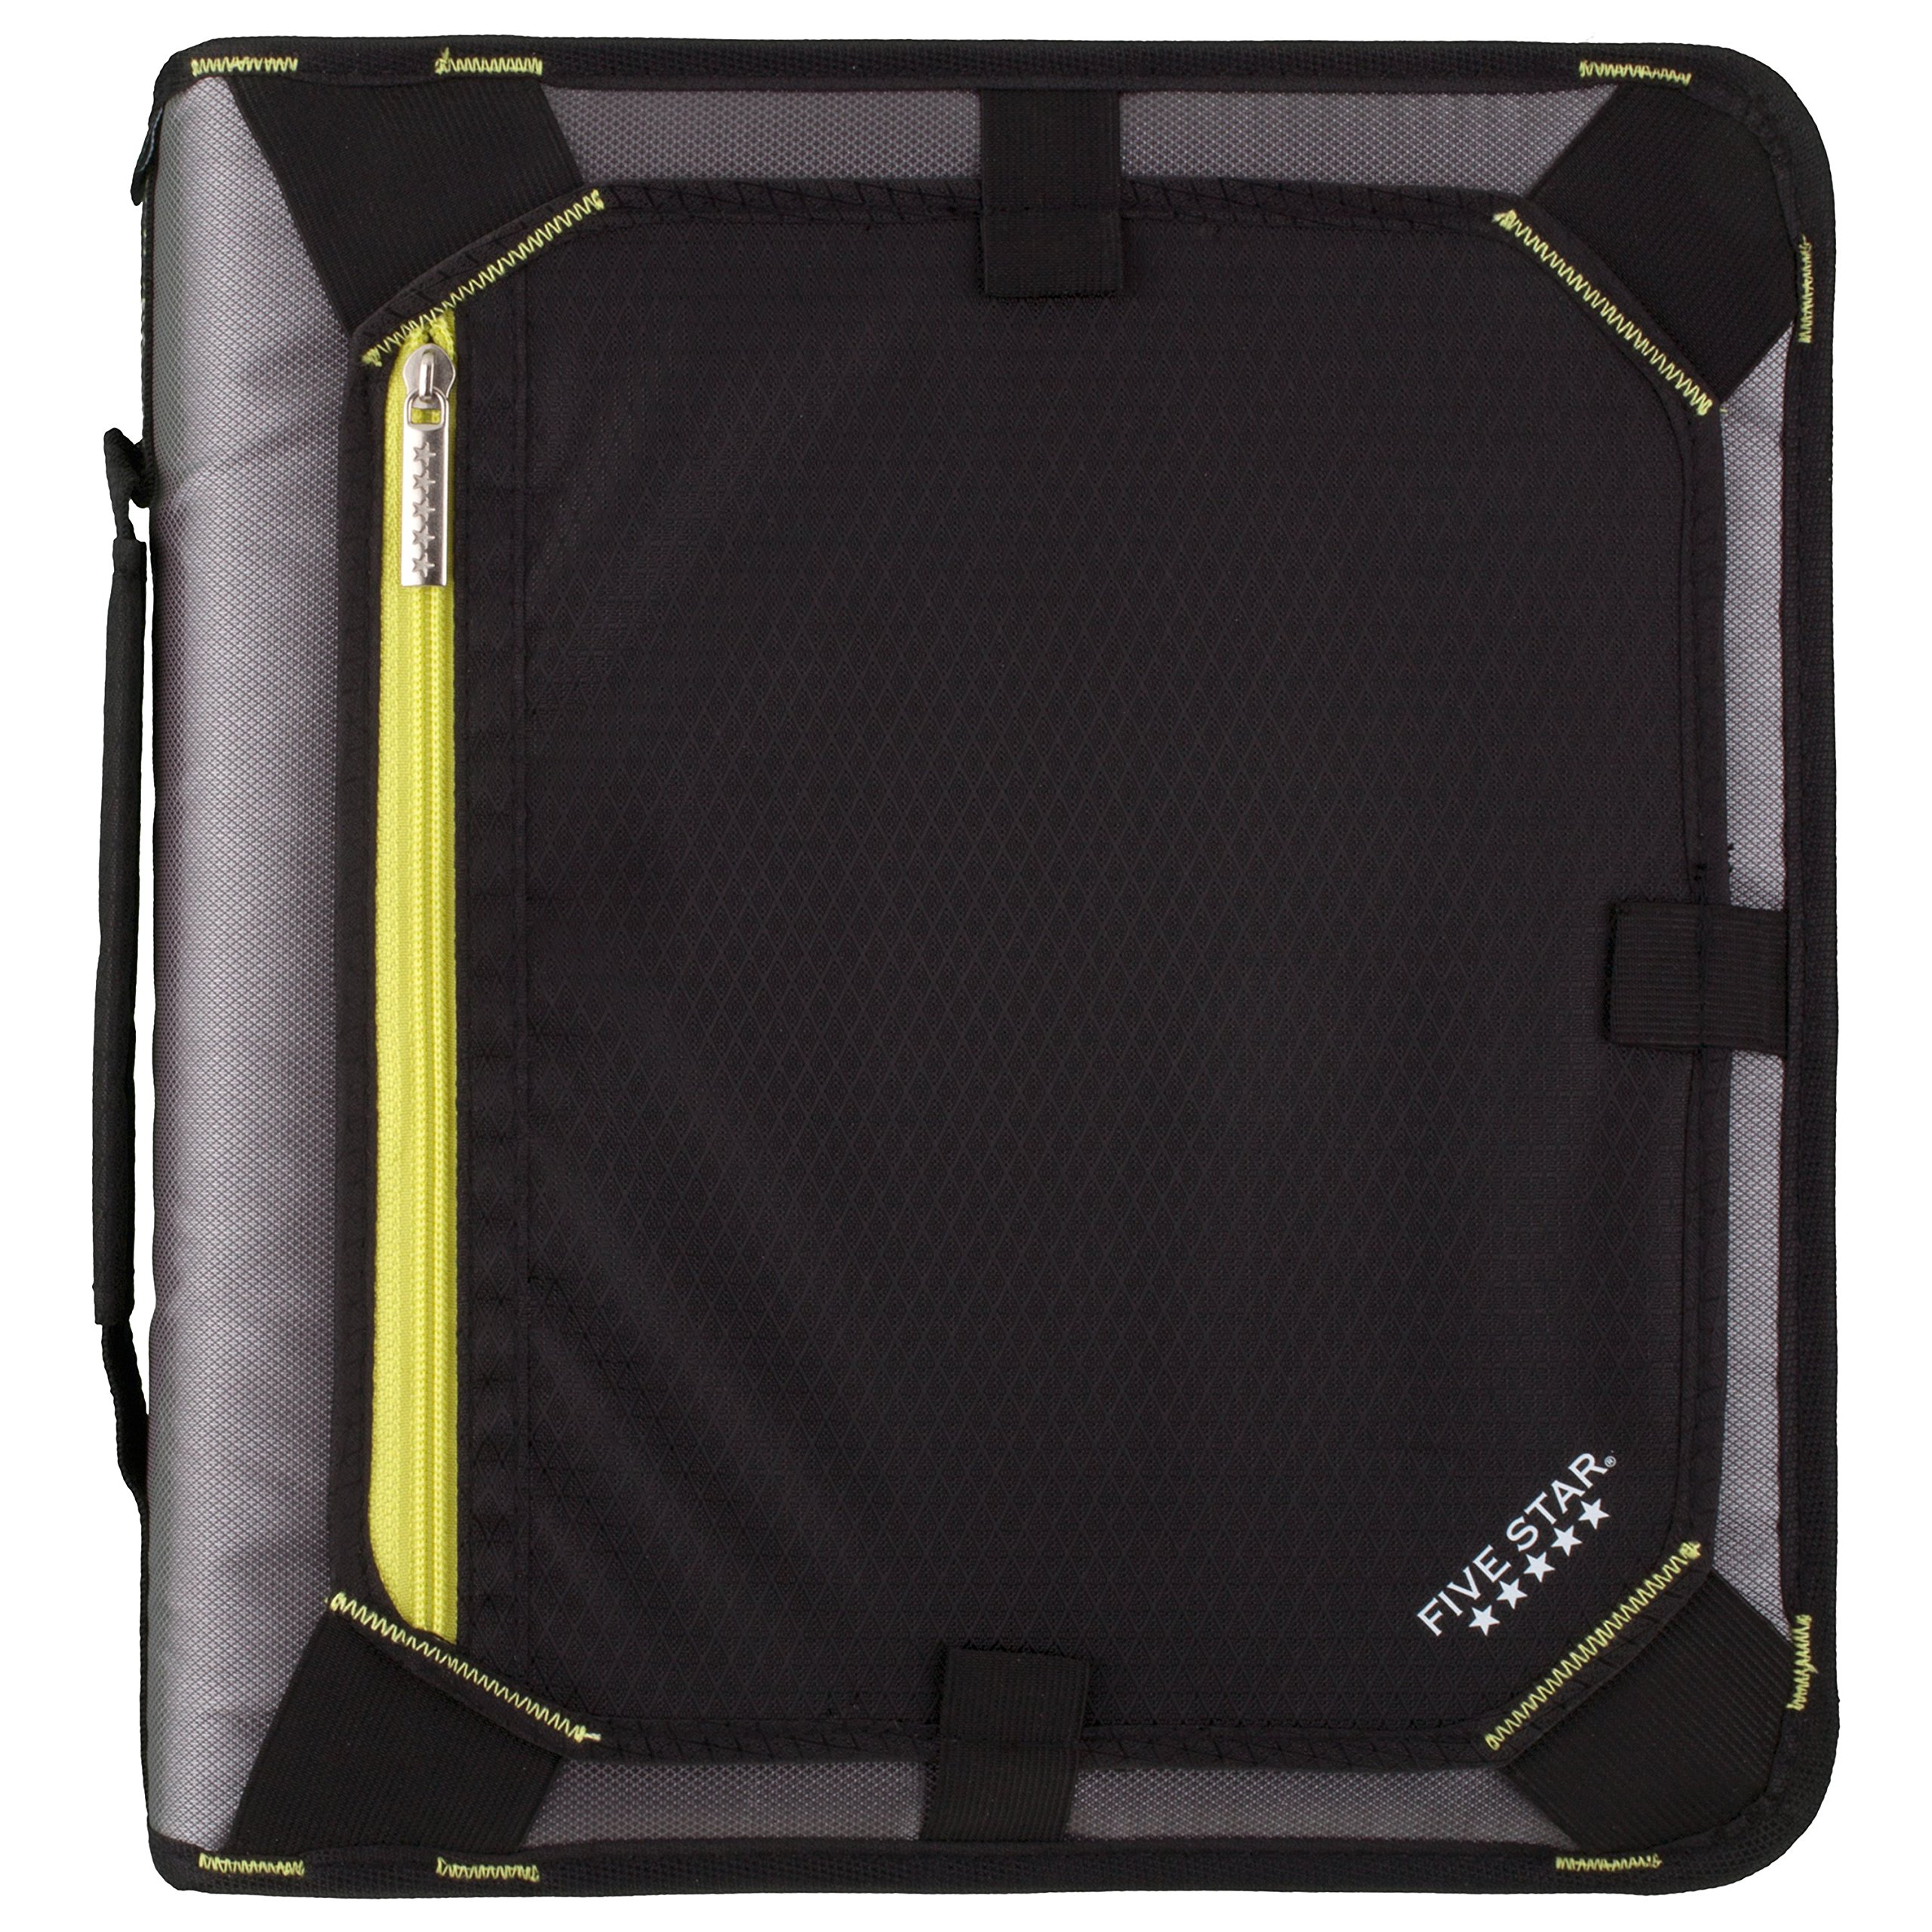 Five Star Zipper Binder, 2 Inch 3 Ring Binder, Expansion Panel, Durable, Black/Yellow (29052BB7) by Five Star